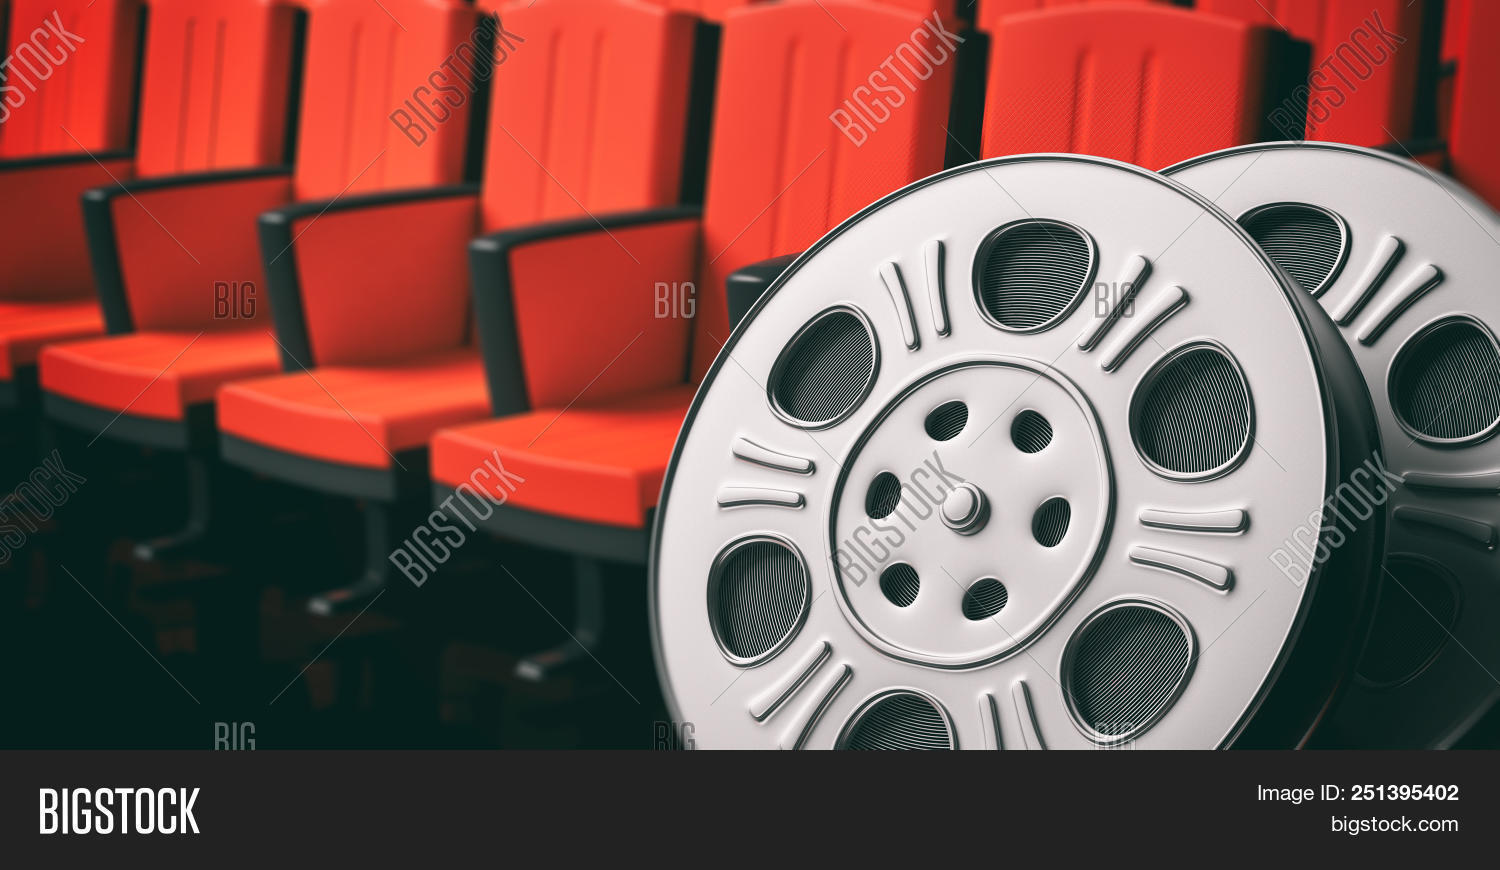 Picture of: Film Movie Reels Image Photo Free Trial Bigstock